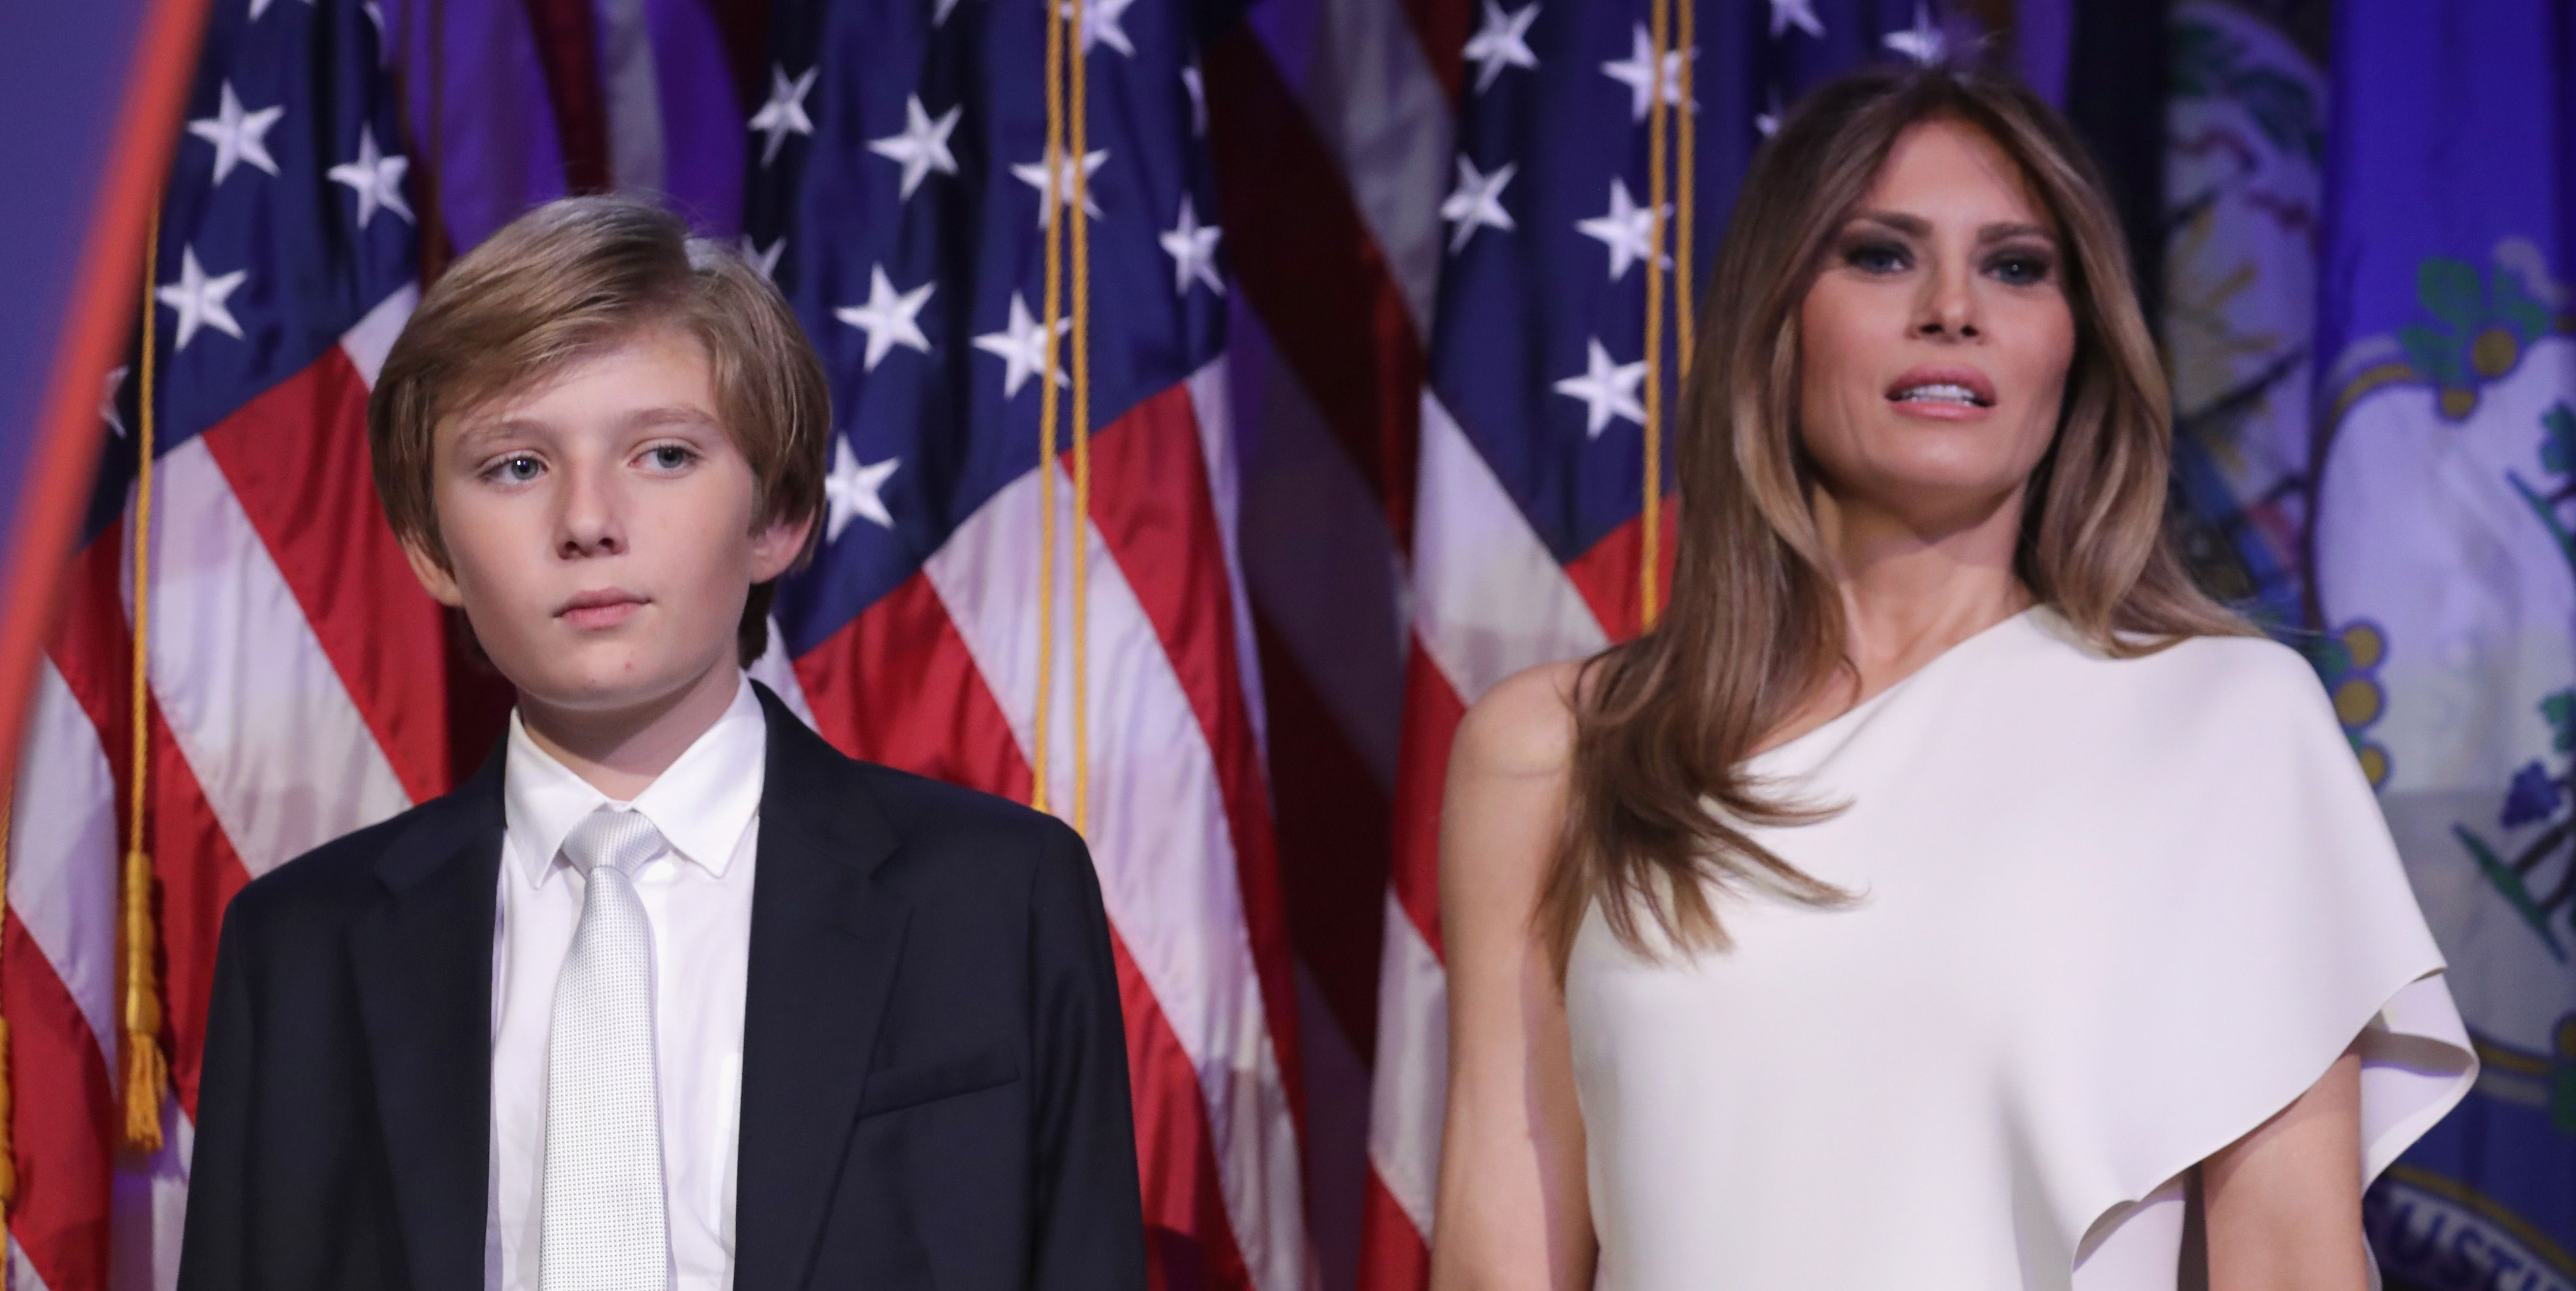 SNL Writer Suspended for Her Tweet About Barron Trump